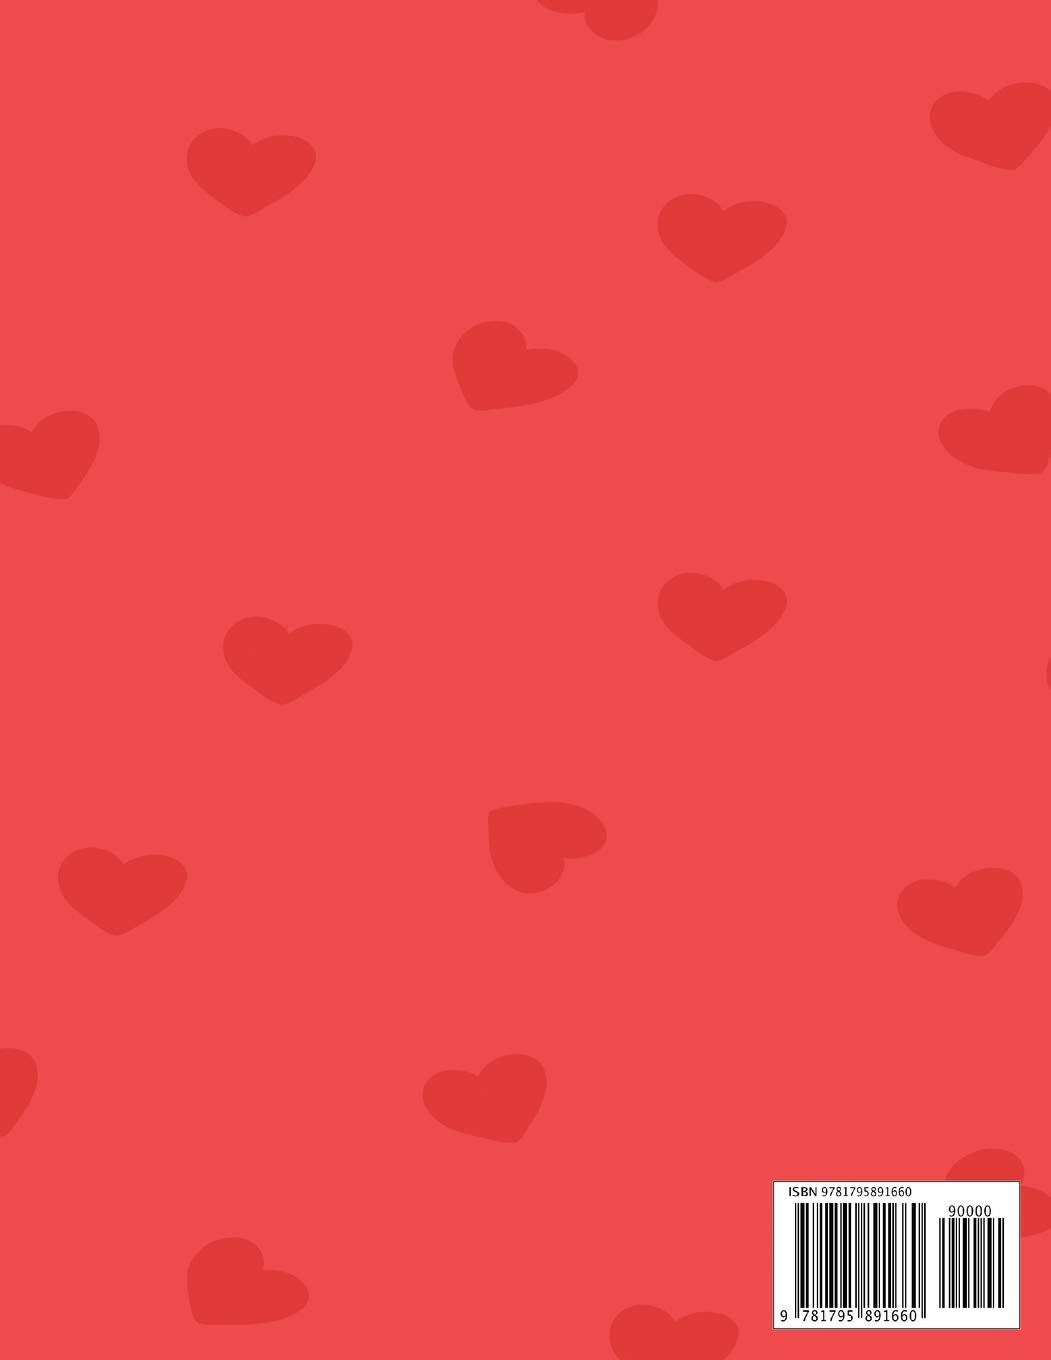 I Love You Valentine S Day Coloring Book For Kids Heart Cut Outs